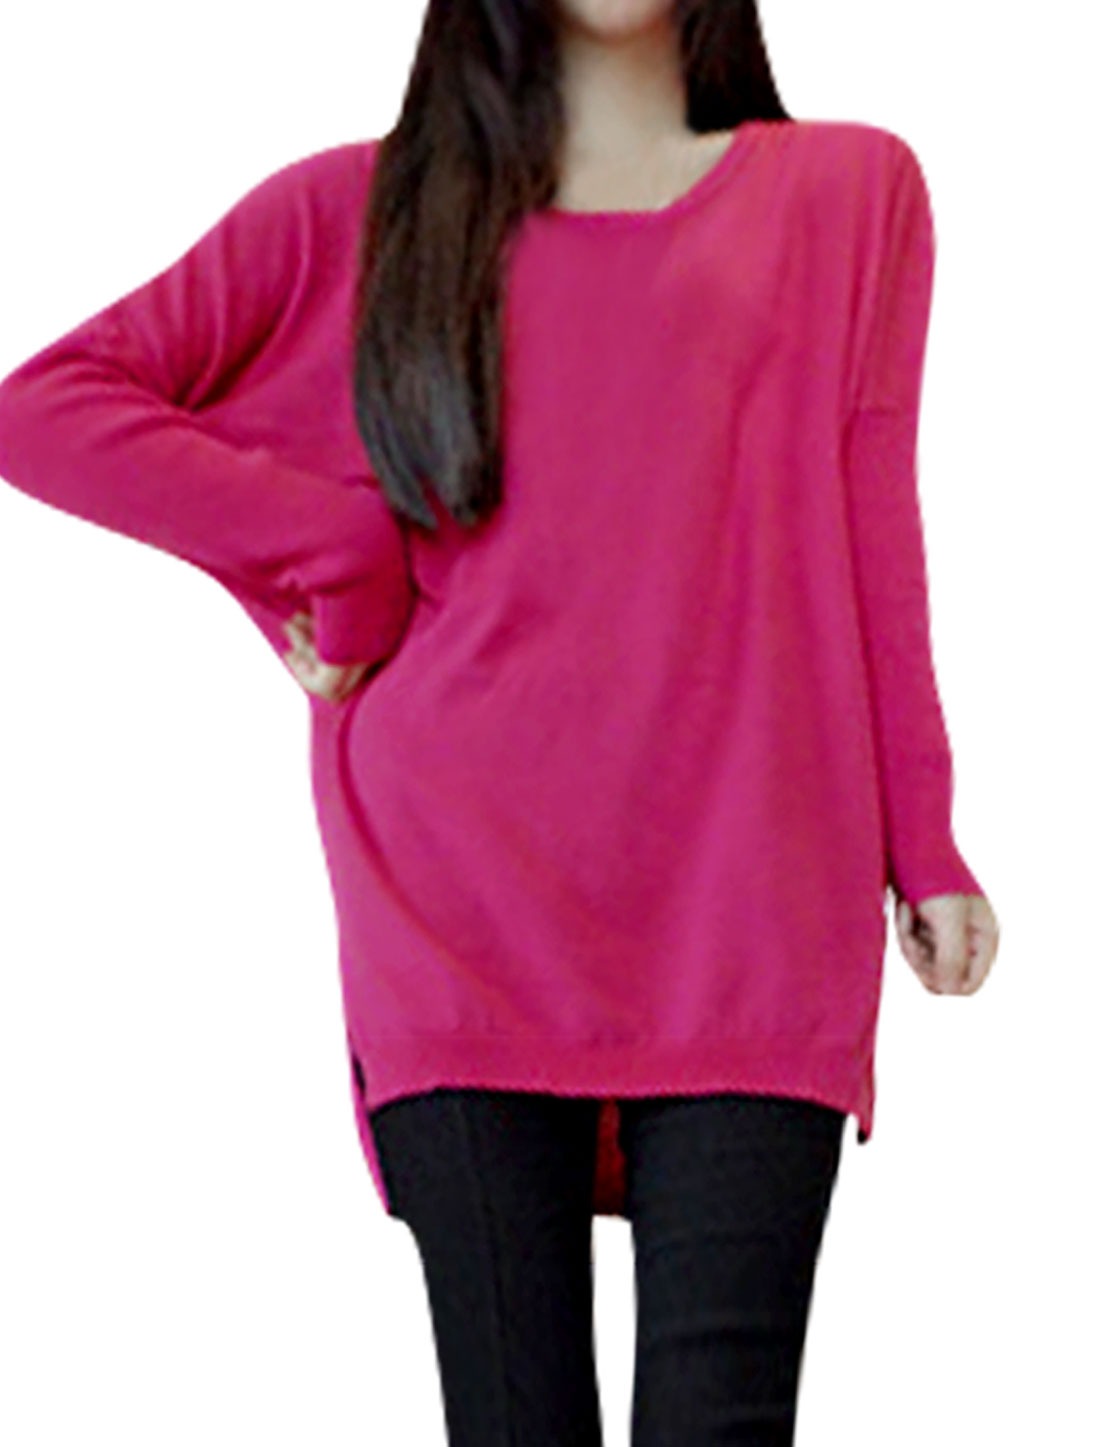 Women Stretchy Scoop Neck Loose Fuchsia Knit Tunic Shirt XS